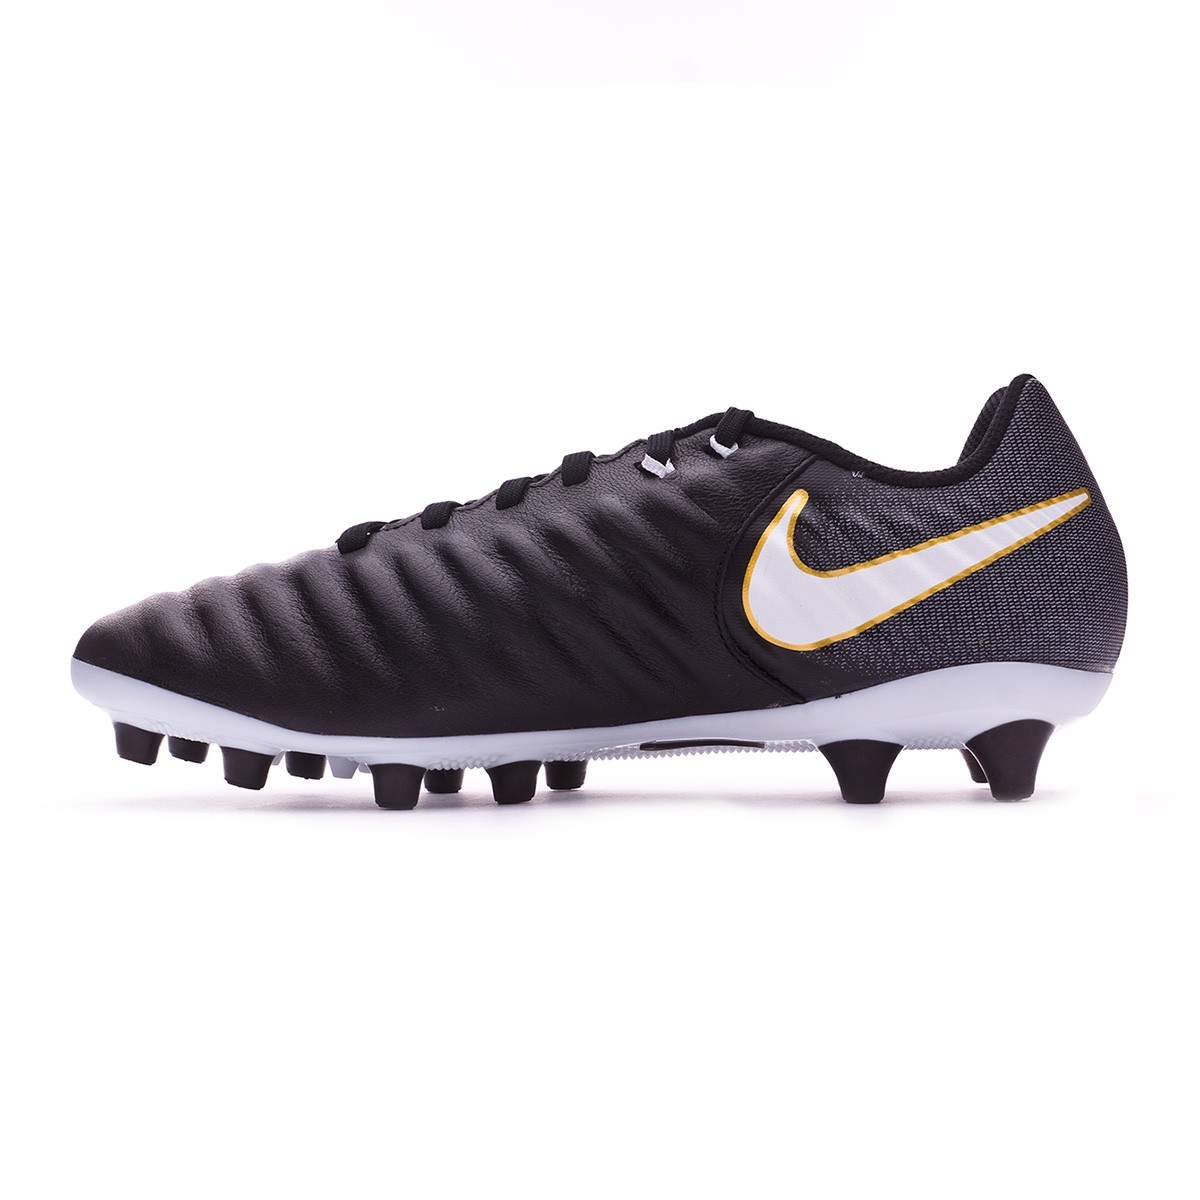 outlet store 85665 8fc5e Football Boots Nike Tiempo Ligera IV AG-Pro Black-White - Football store  Fútbol Emotion